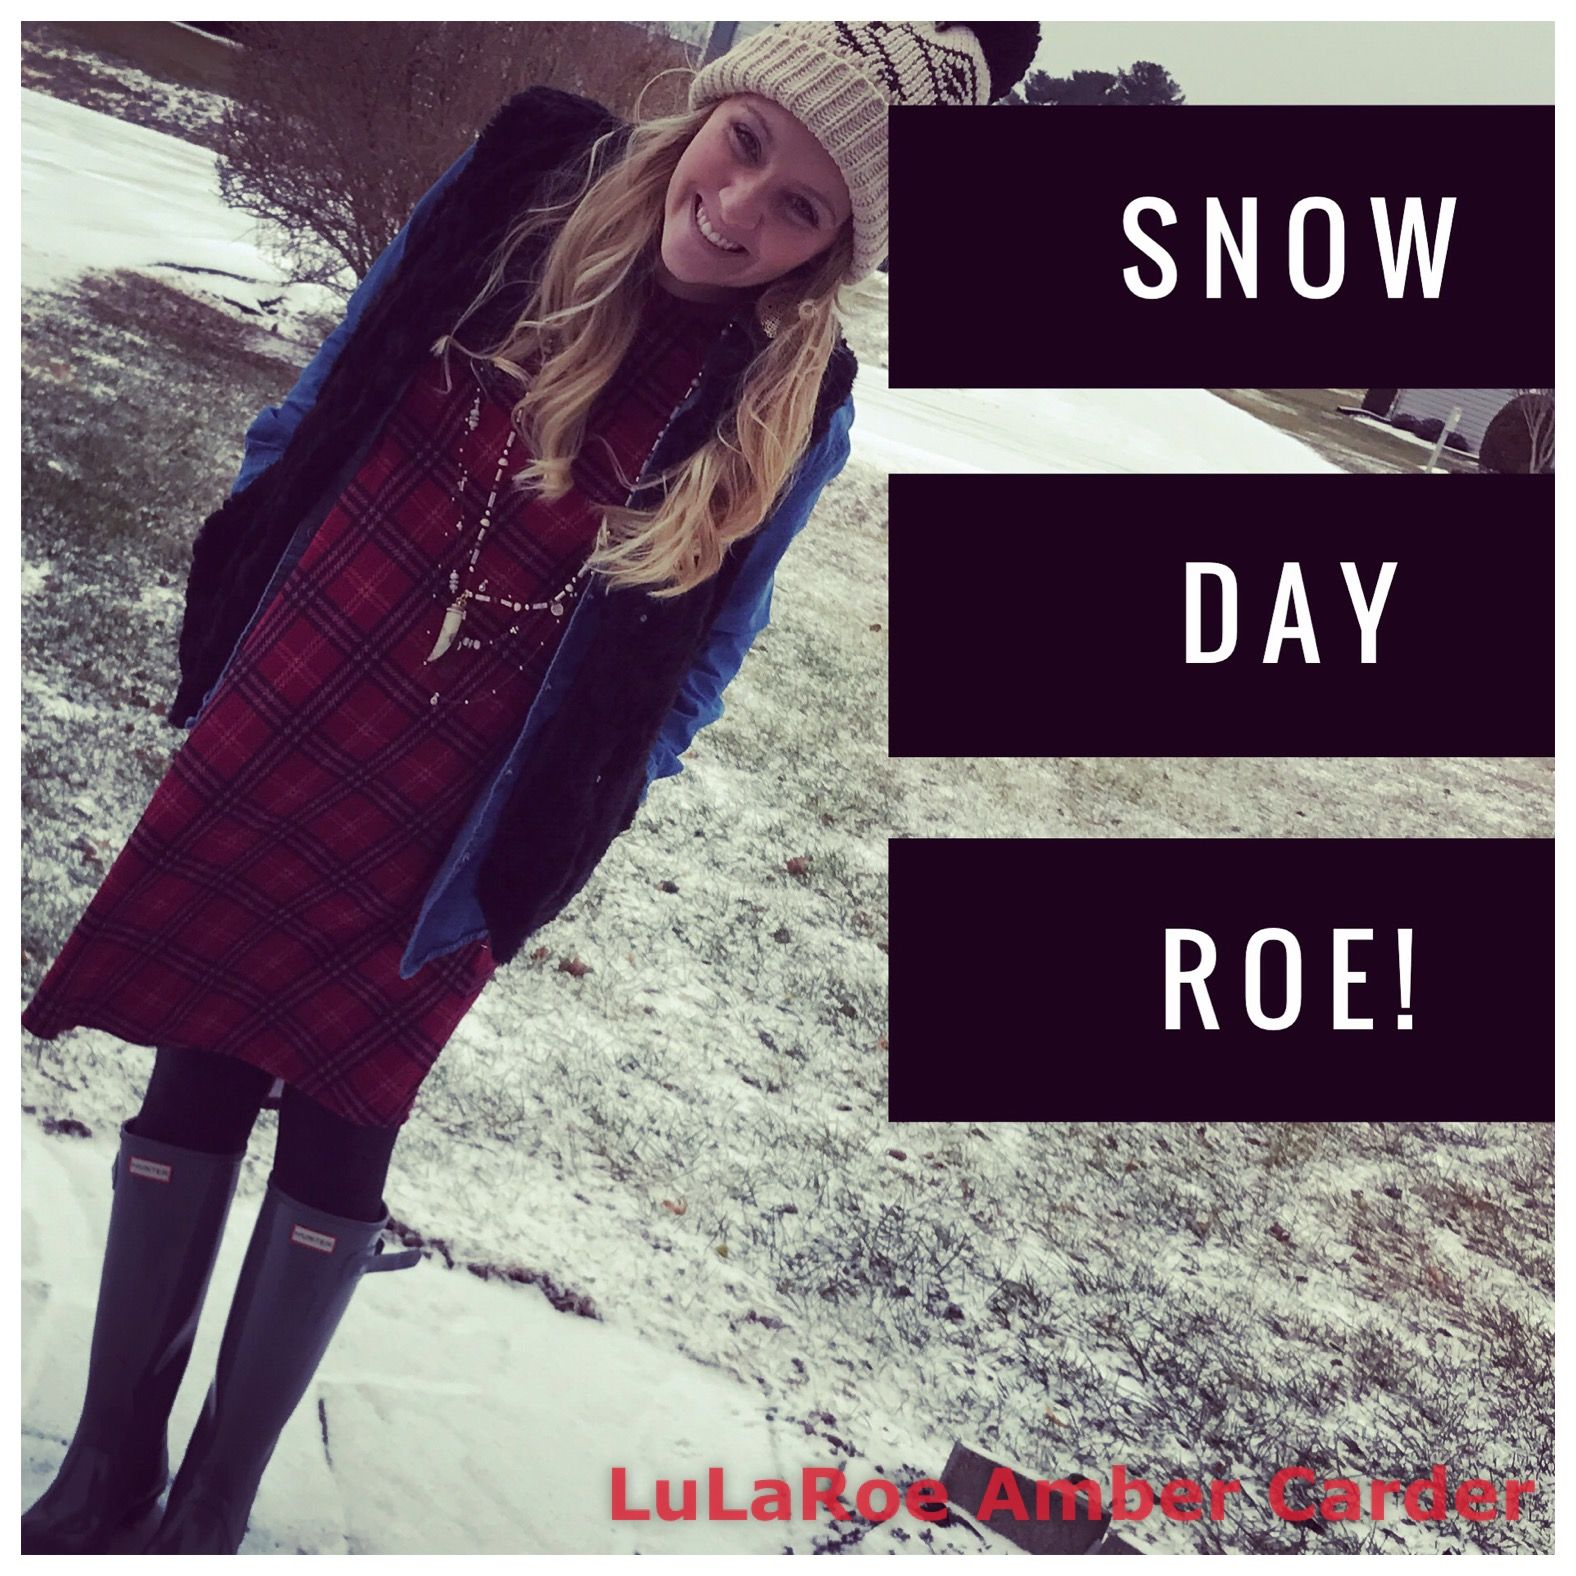 Plaid, fur vests, and boots. HTTPS://www.facebook.com/groups/lularoeambercarder